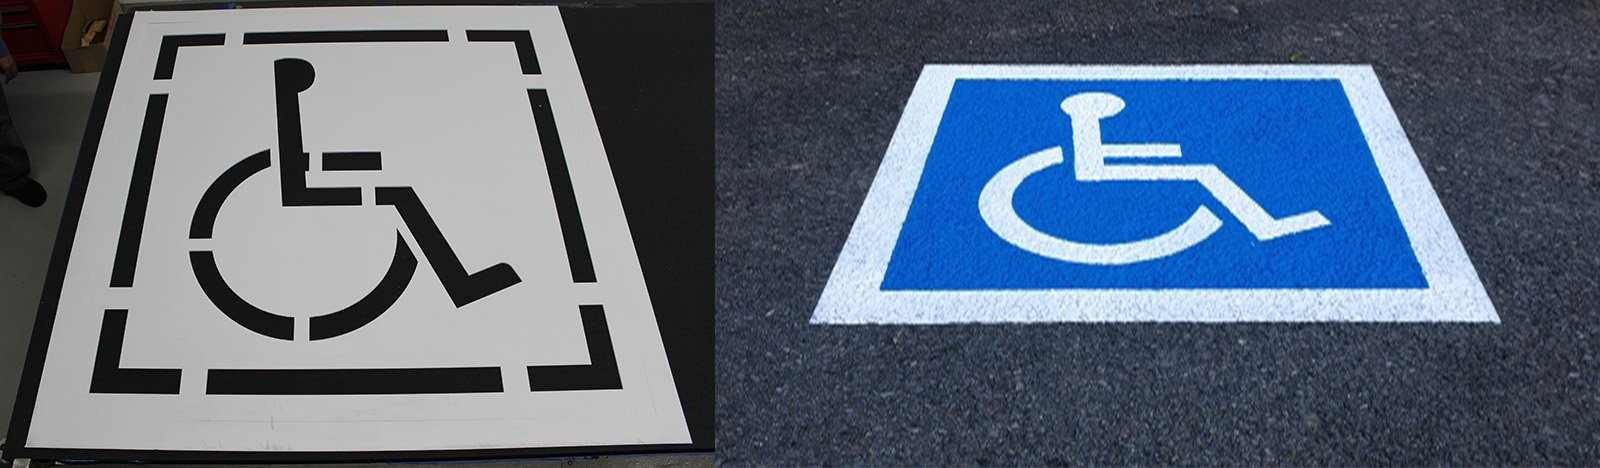 handicap parking stencils - precision cuttings